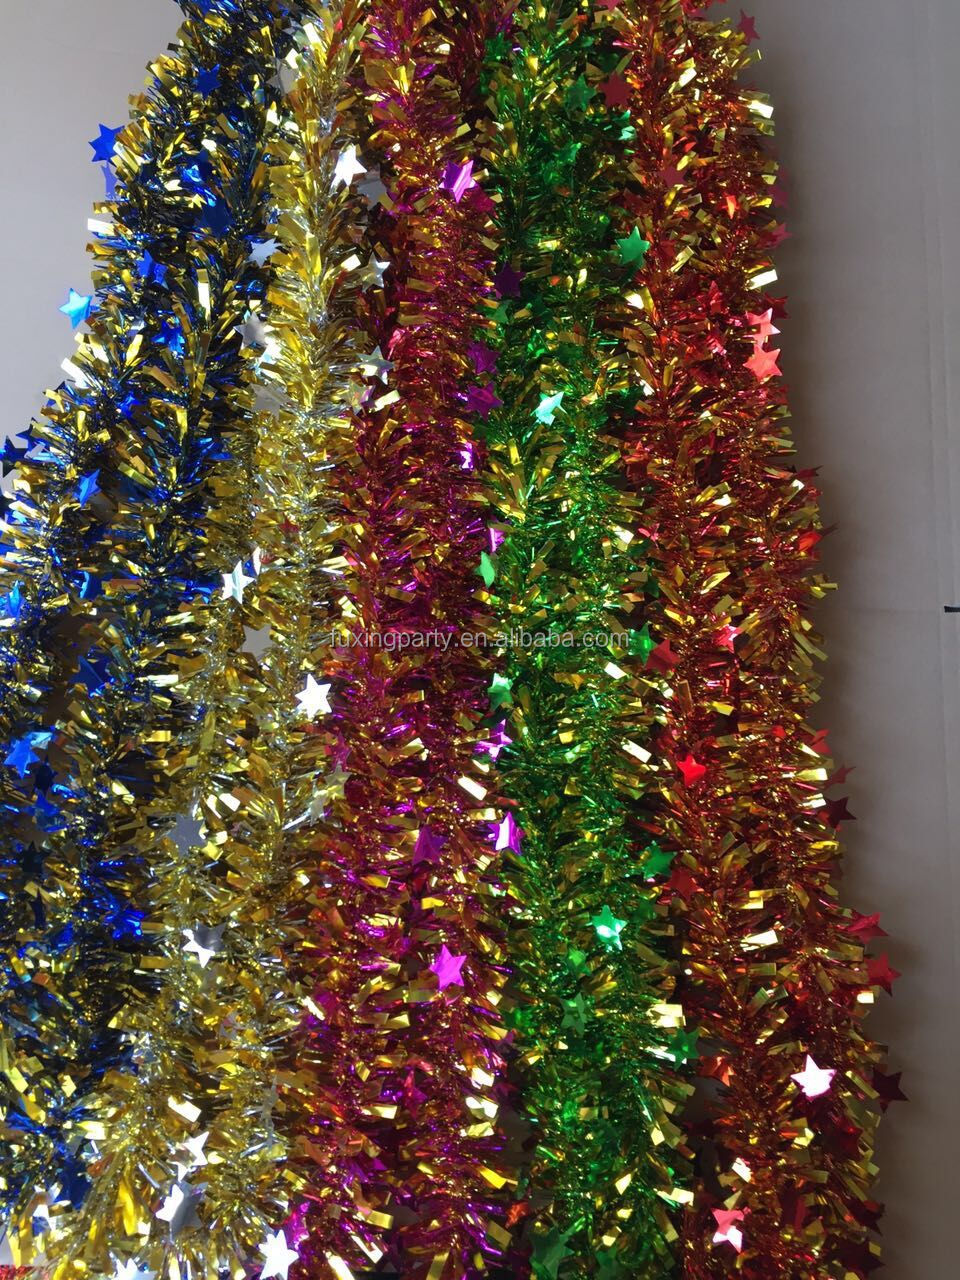 Christmas tree tinsel garland merry christmas and happy How to decorate a christmas tree without tinsel